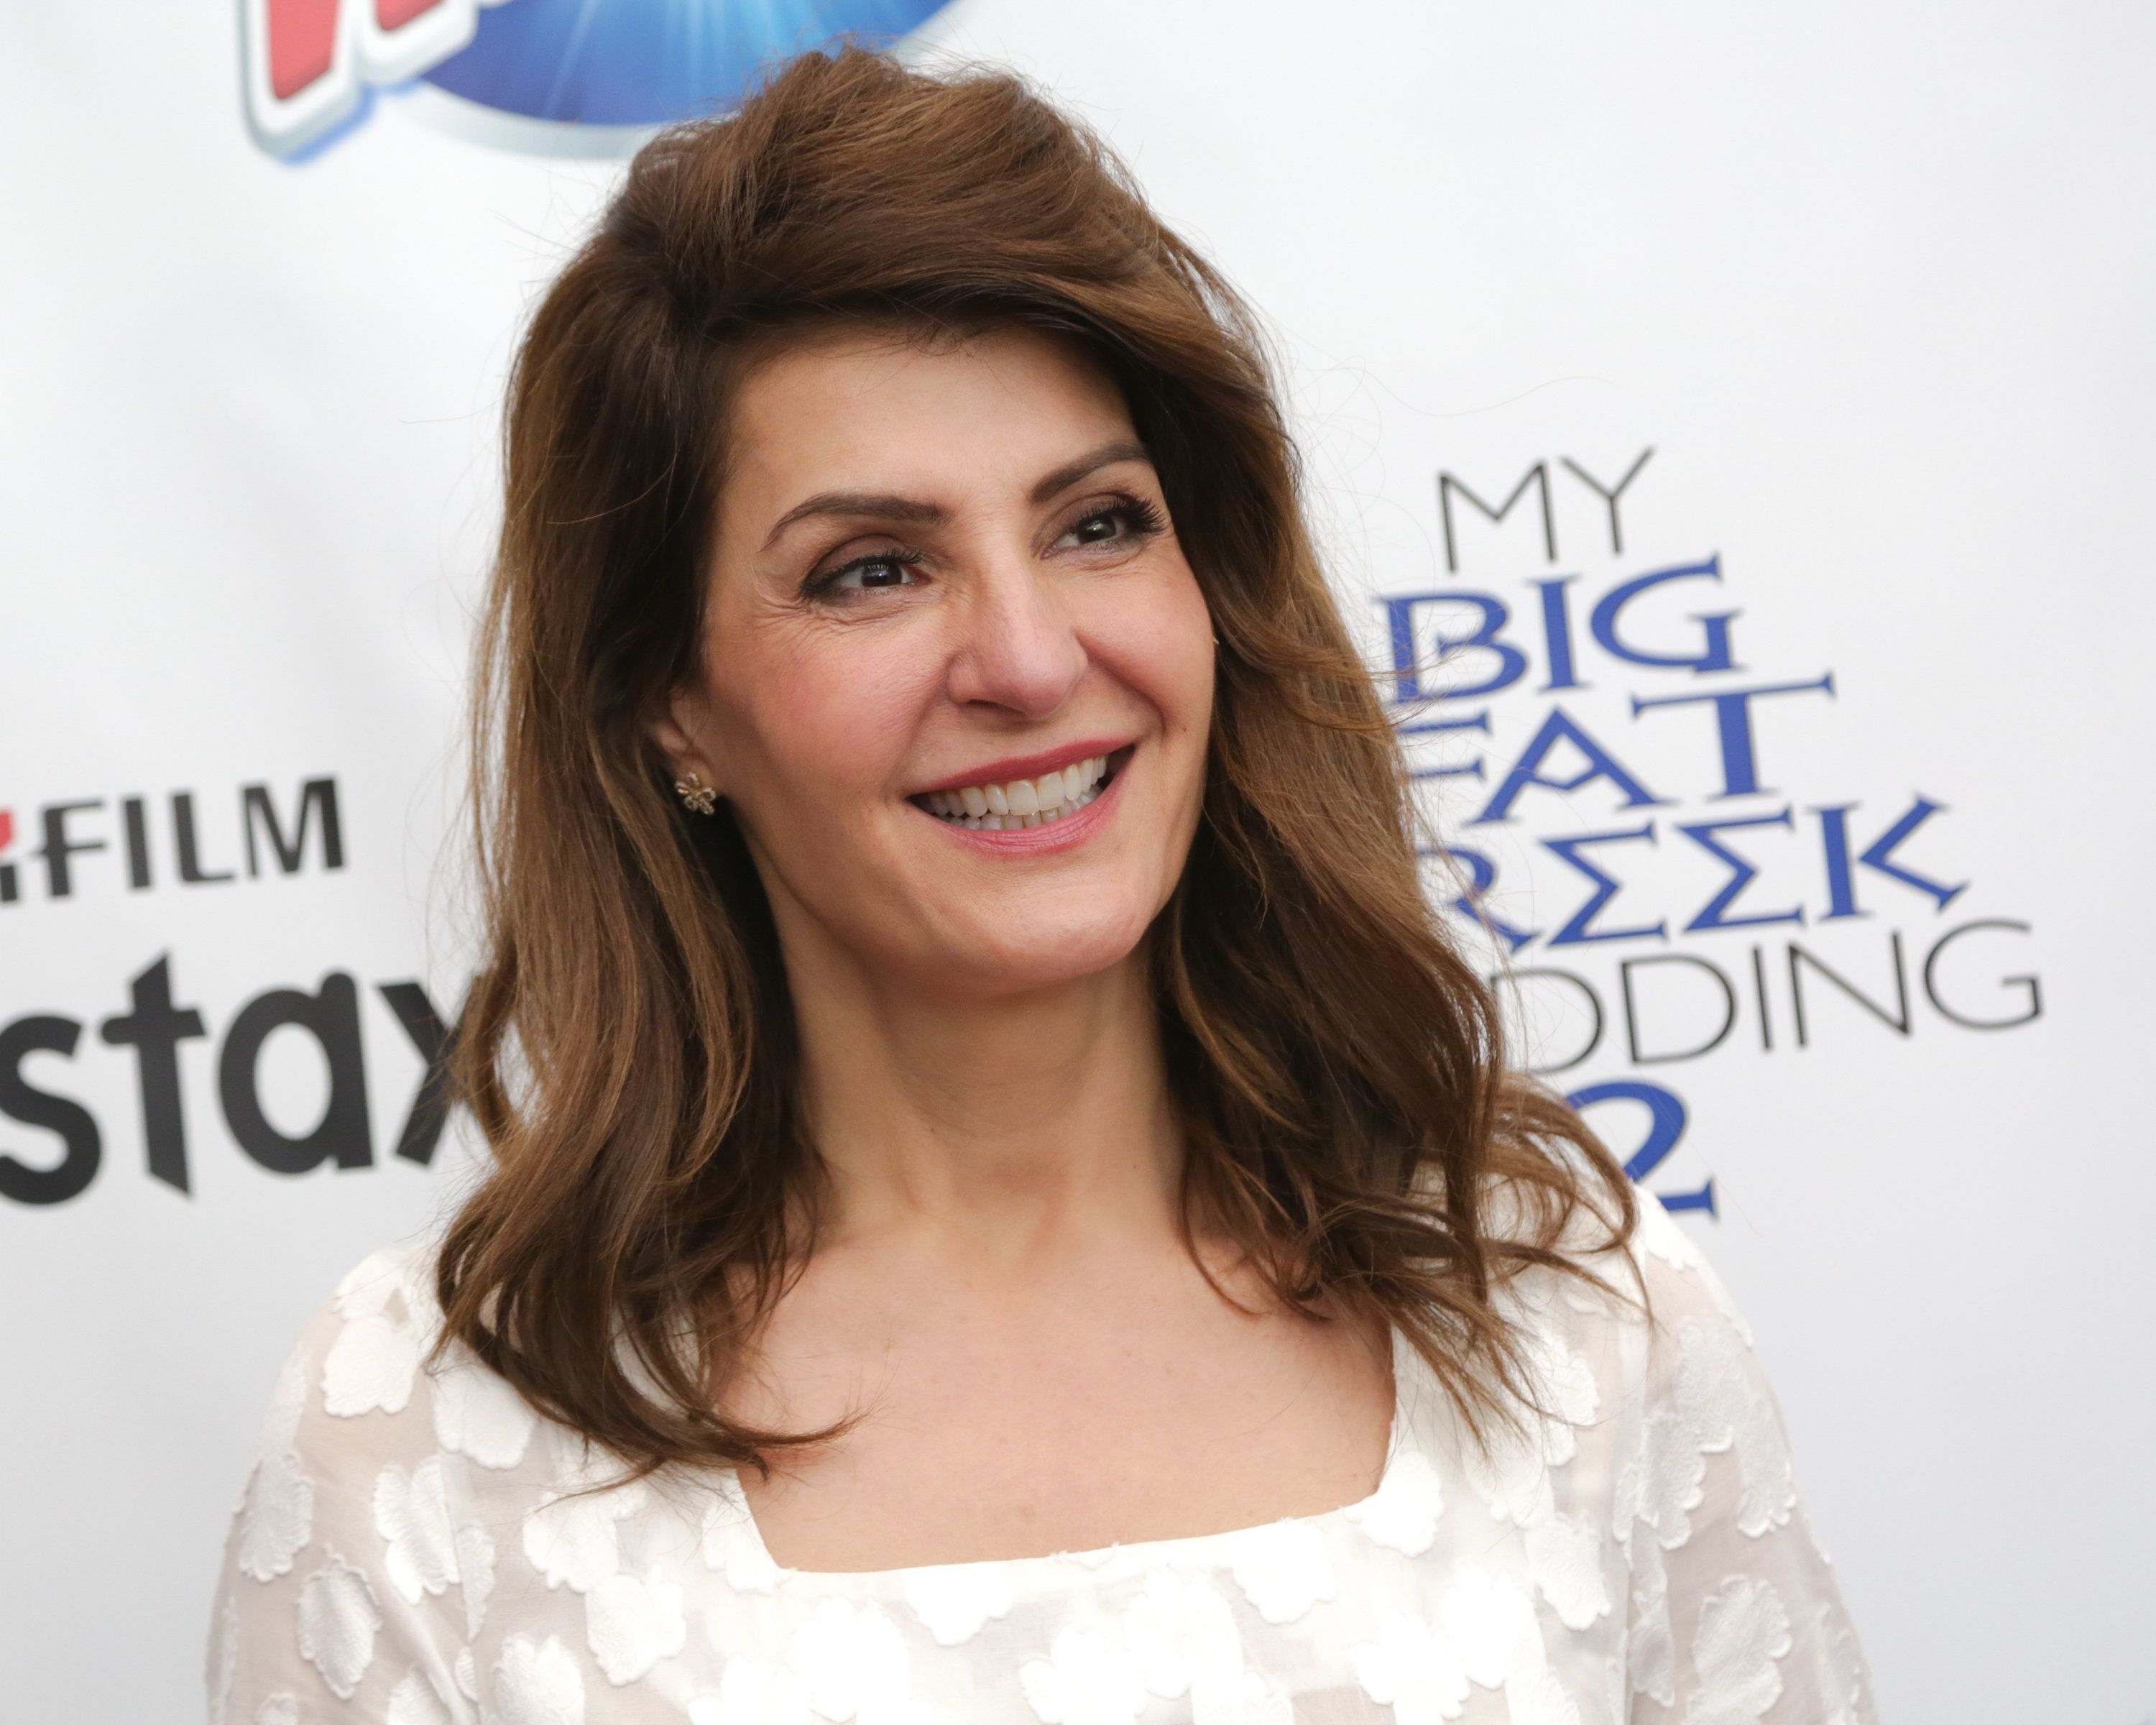 NEW YORK, NY - MARCH 18:  Actress/screenwriter Nia Vardalos attends the Mamarazzi screening of 'My Big Fat Greek Wedding 2' on March 18, 2016 in New York City.  (Photo by Brent N. Clarke/FilmMagic)